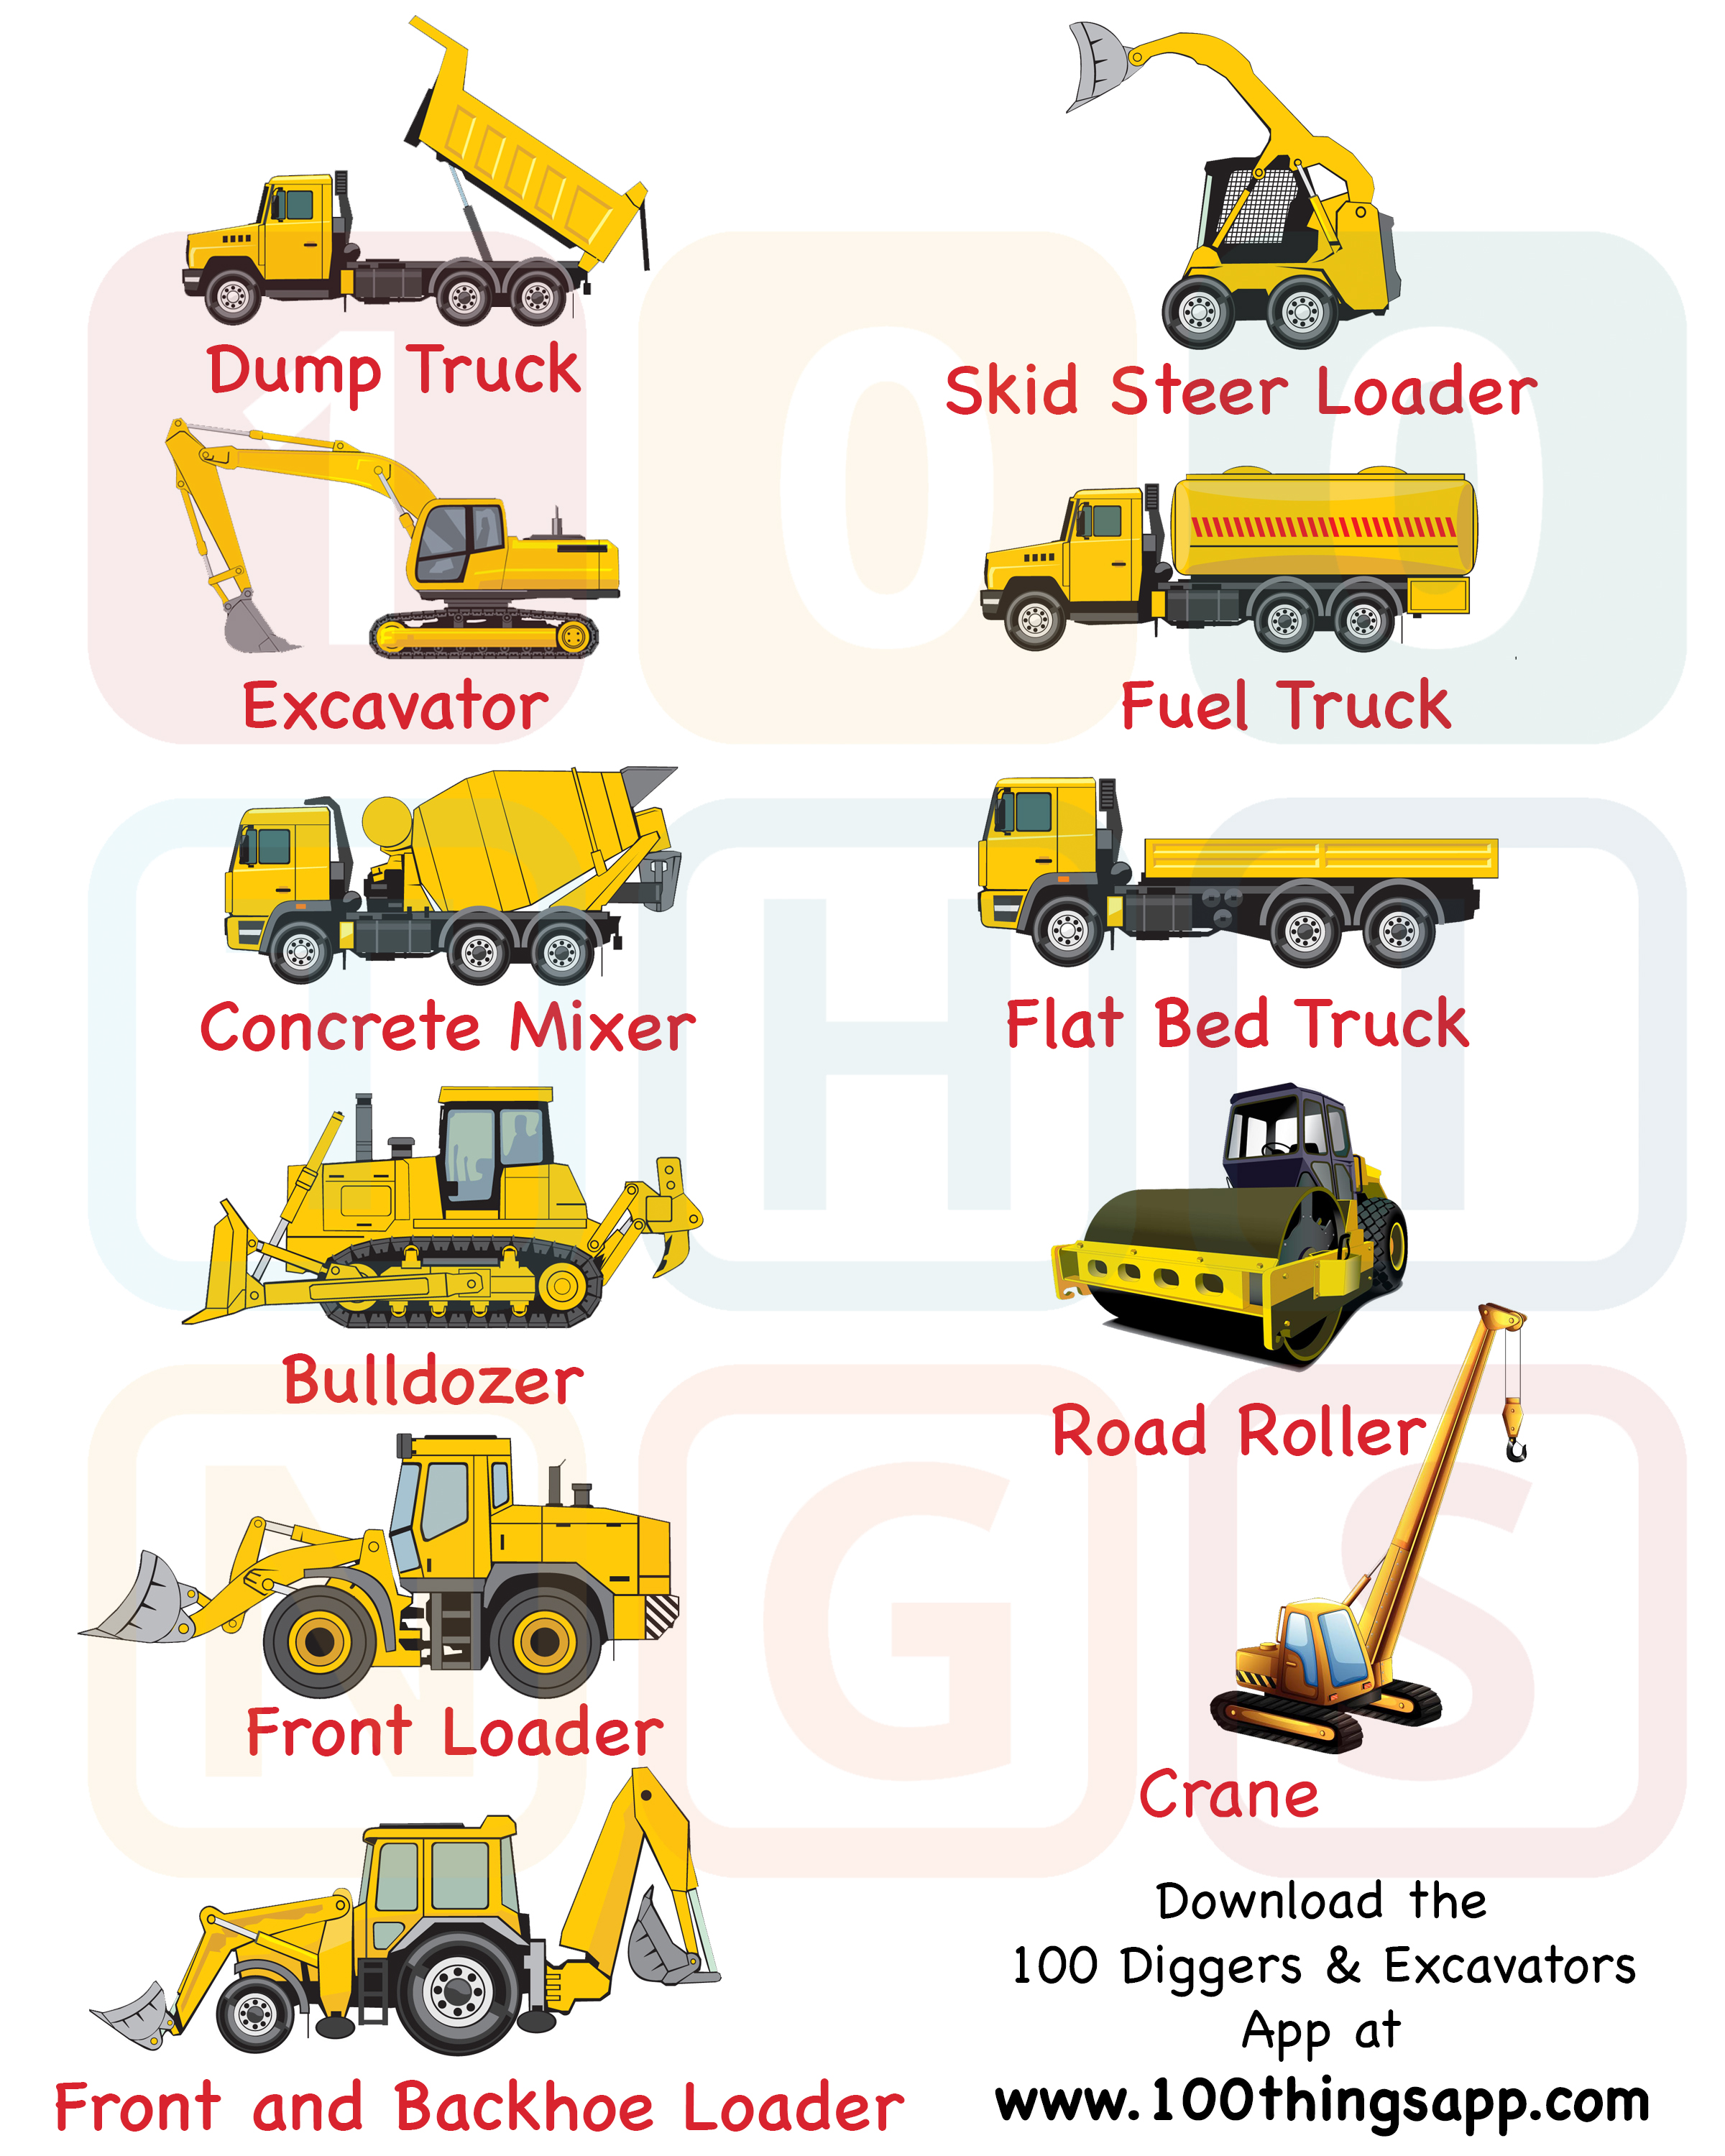 Legend and list of the types of construction trucks, vehicles & heavy equipment used at construction sites.